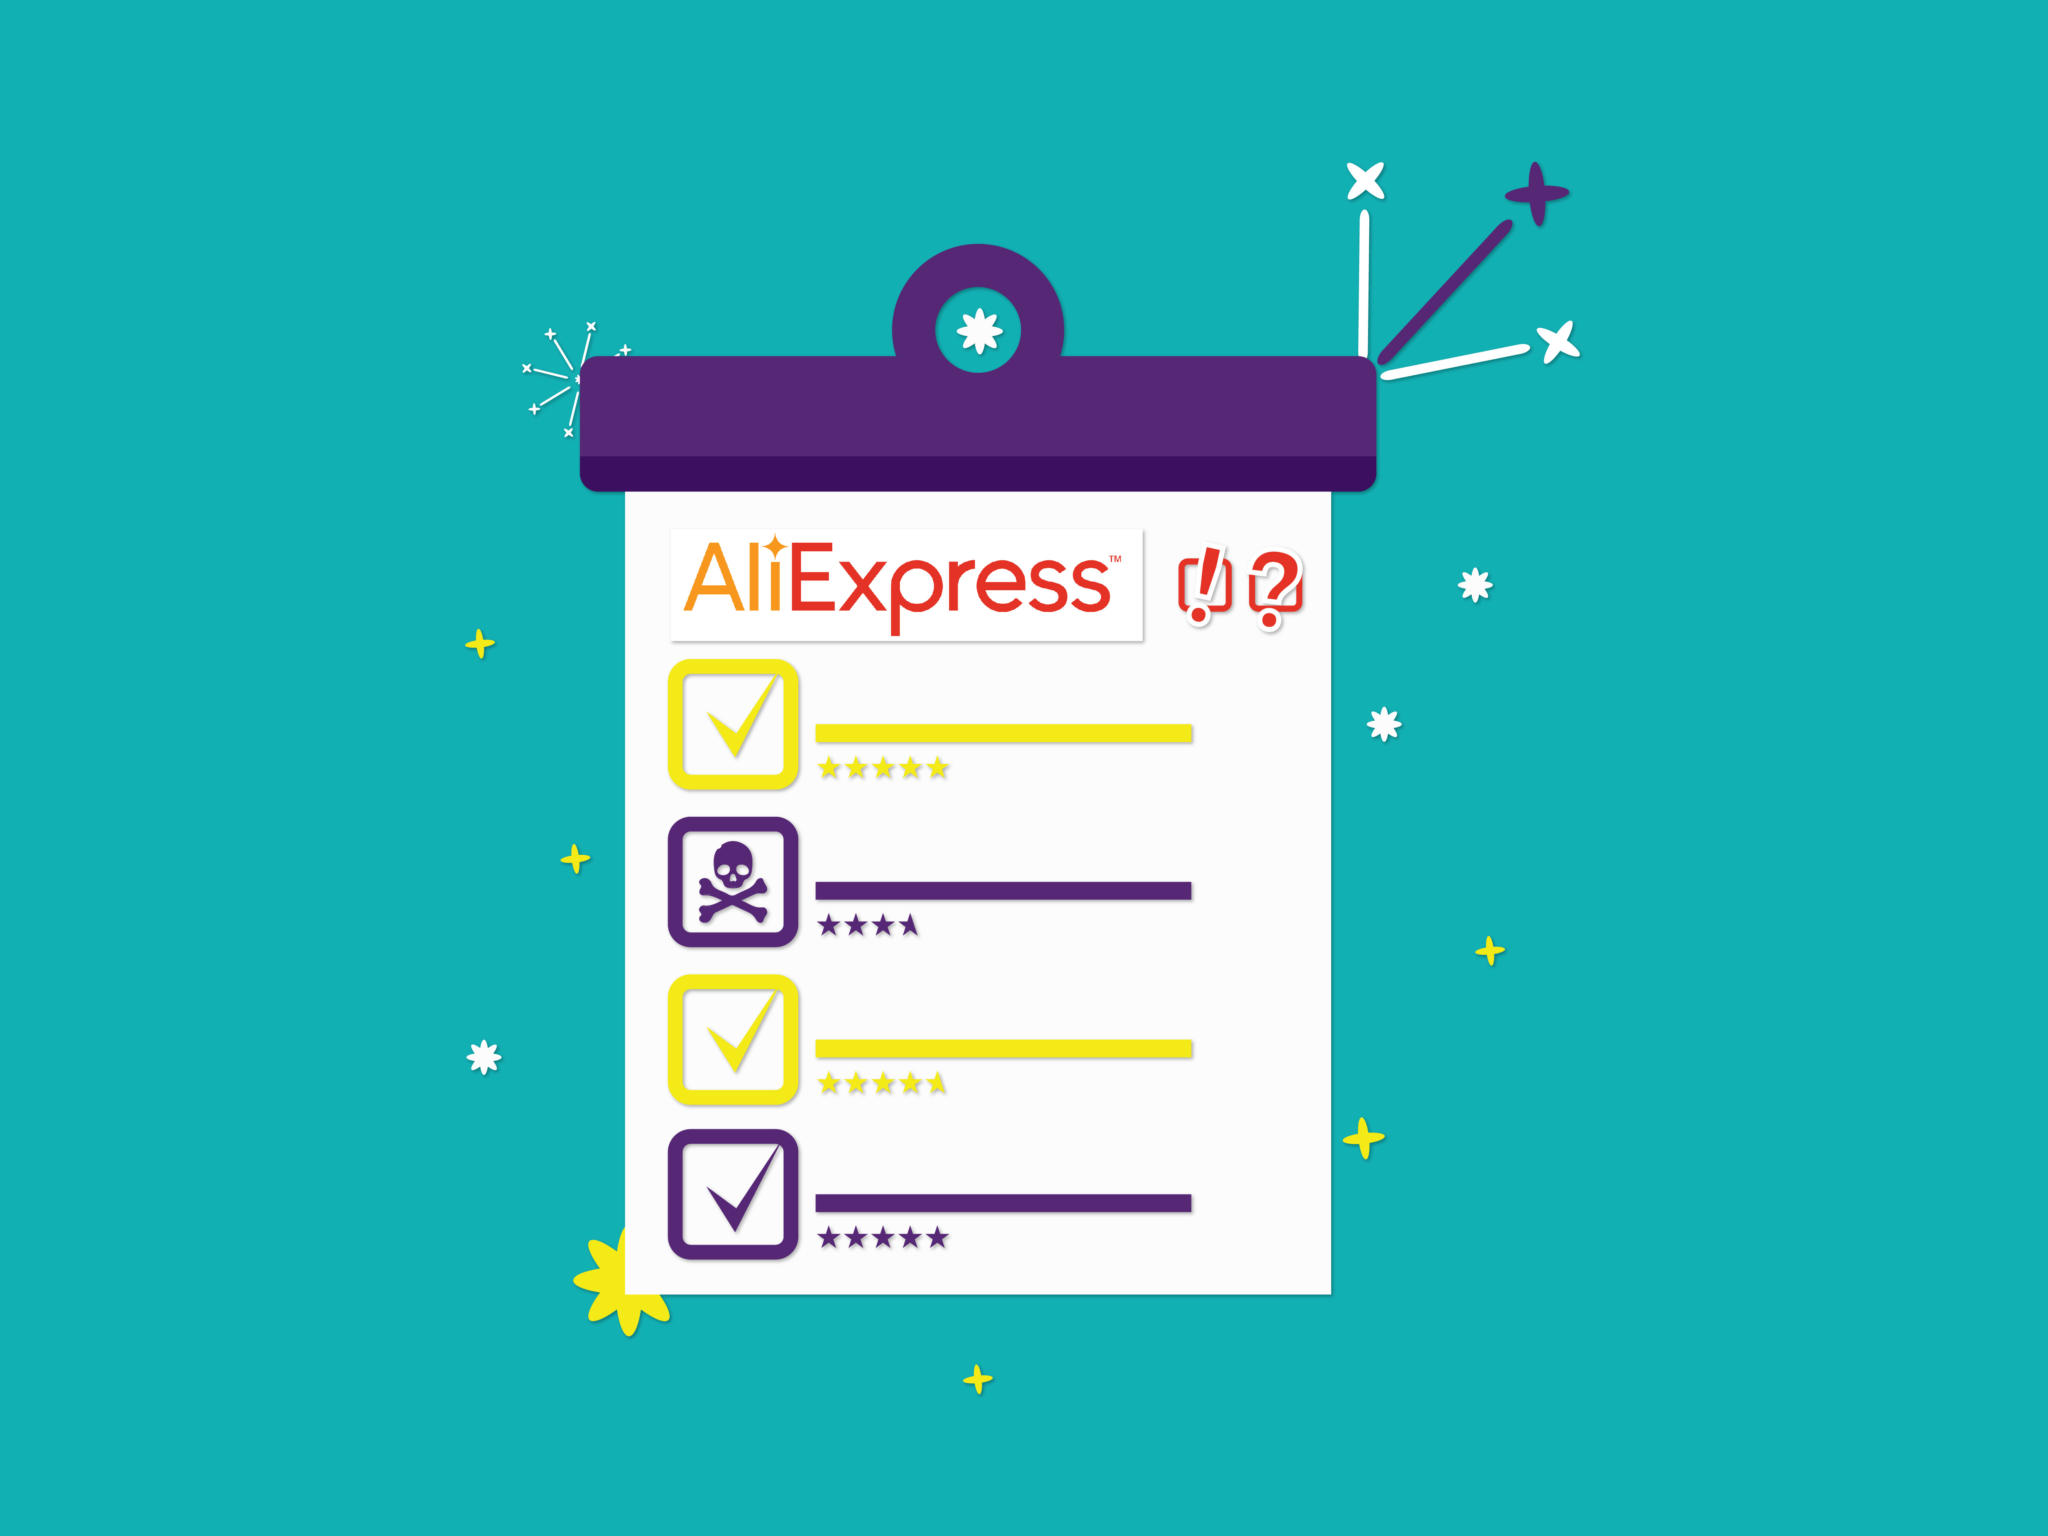 efec8f5fea6 Is AliExpress legit? How to identify and avoid dodgy manufacturers.